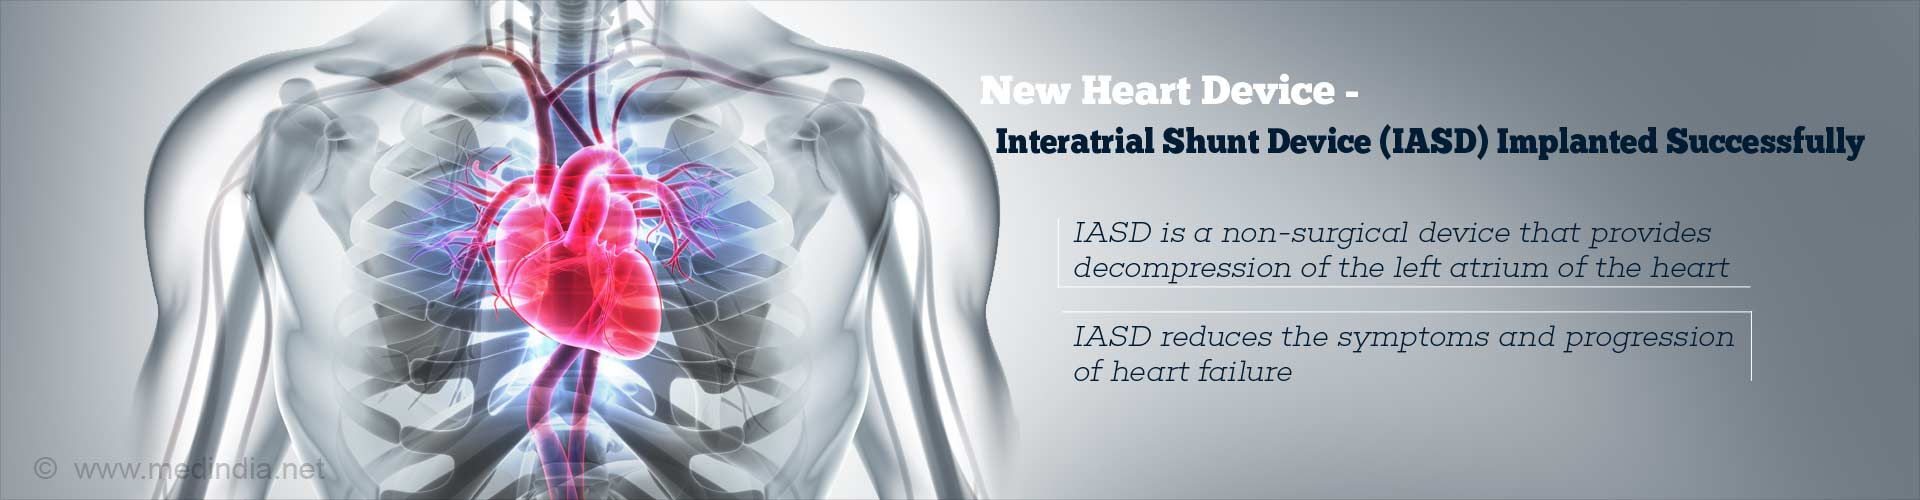 New Interatrial Shunt Device (IASD) Implantation Successful